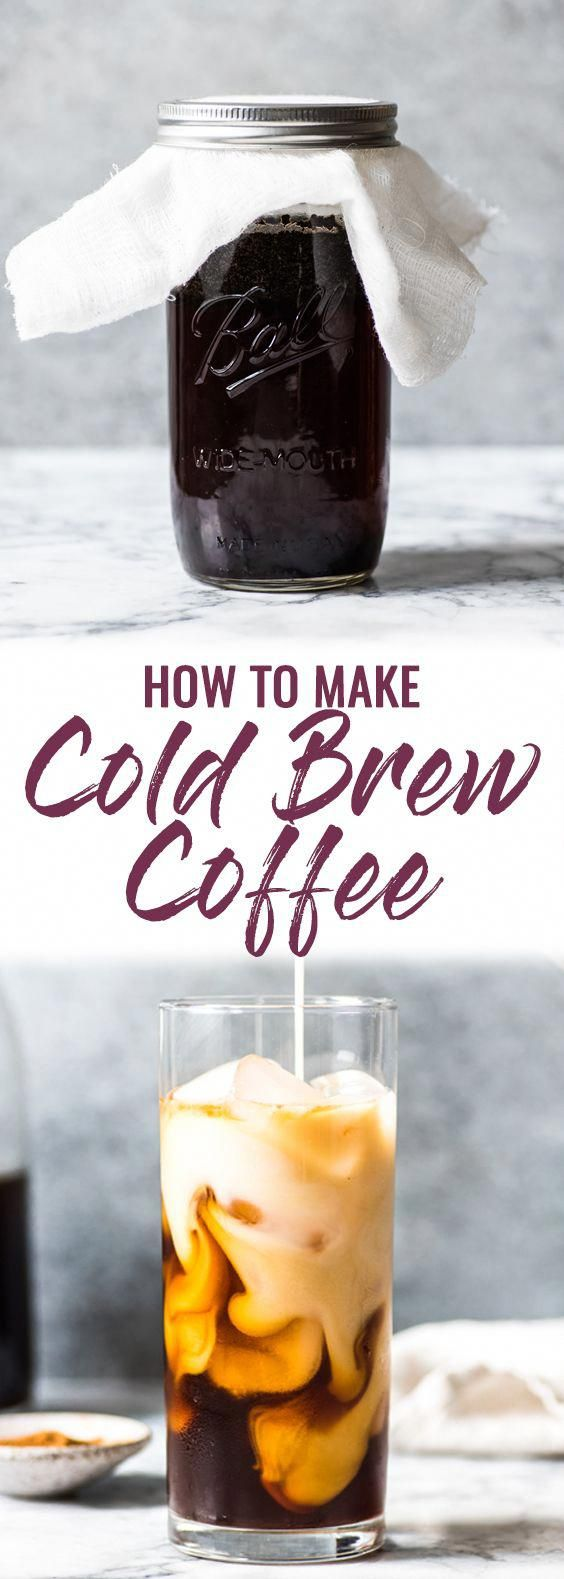 How to Make Cold Brew Coffee at home! No more expensive and overpriced iced lattes - make your own with cold brew!